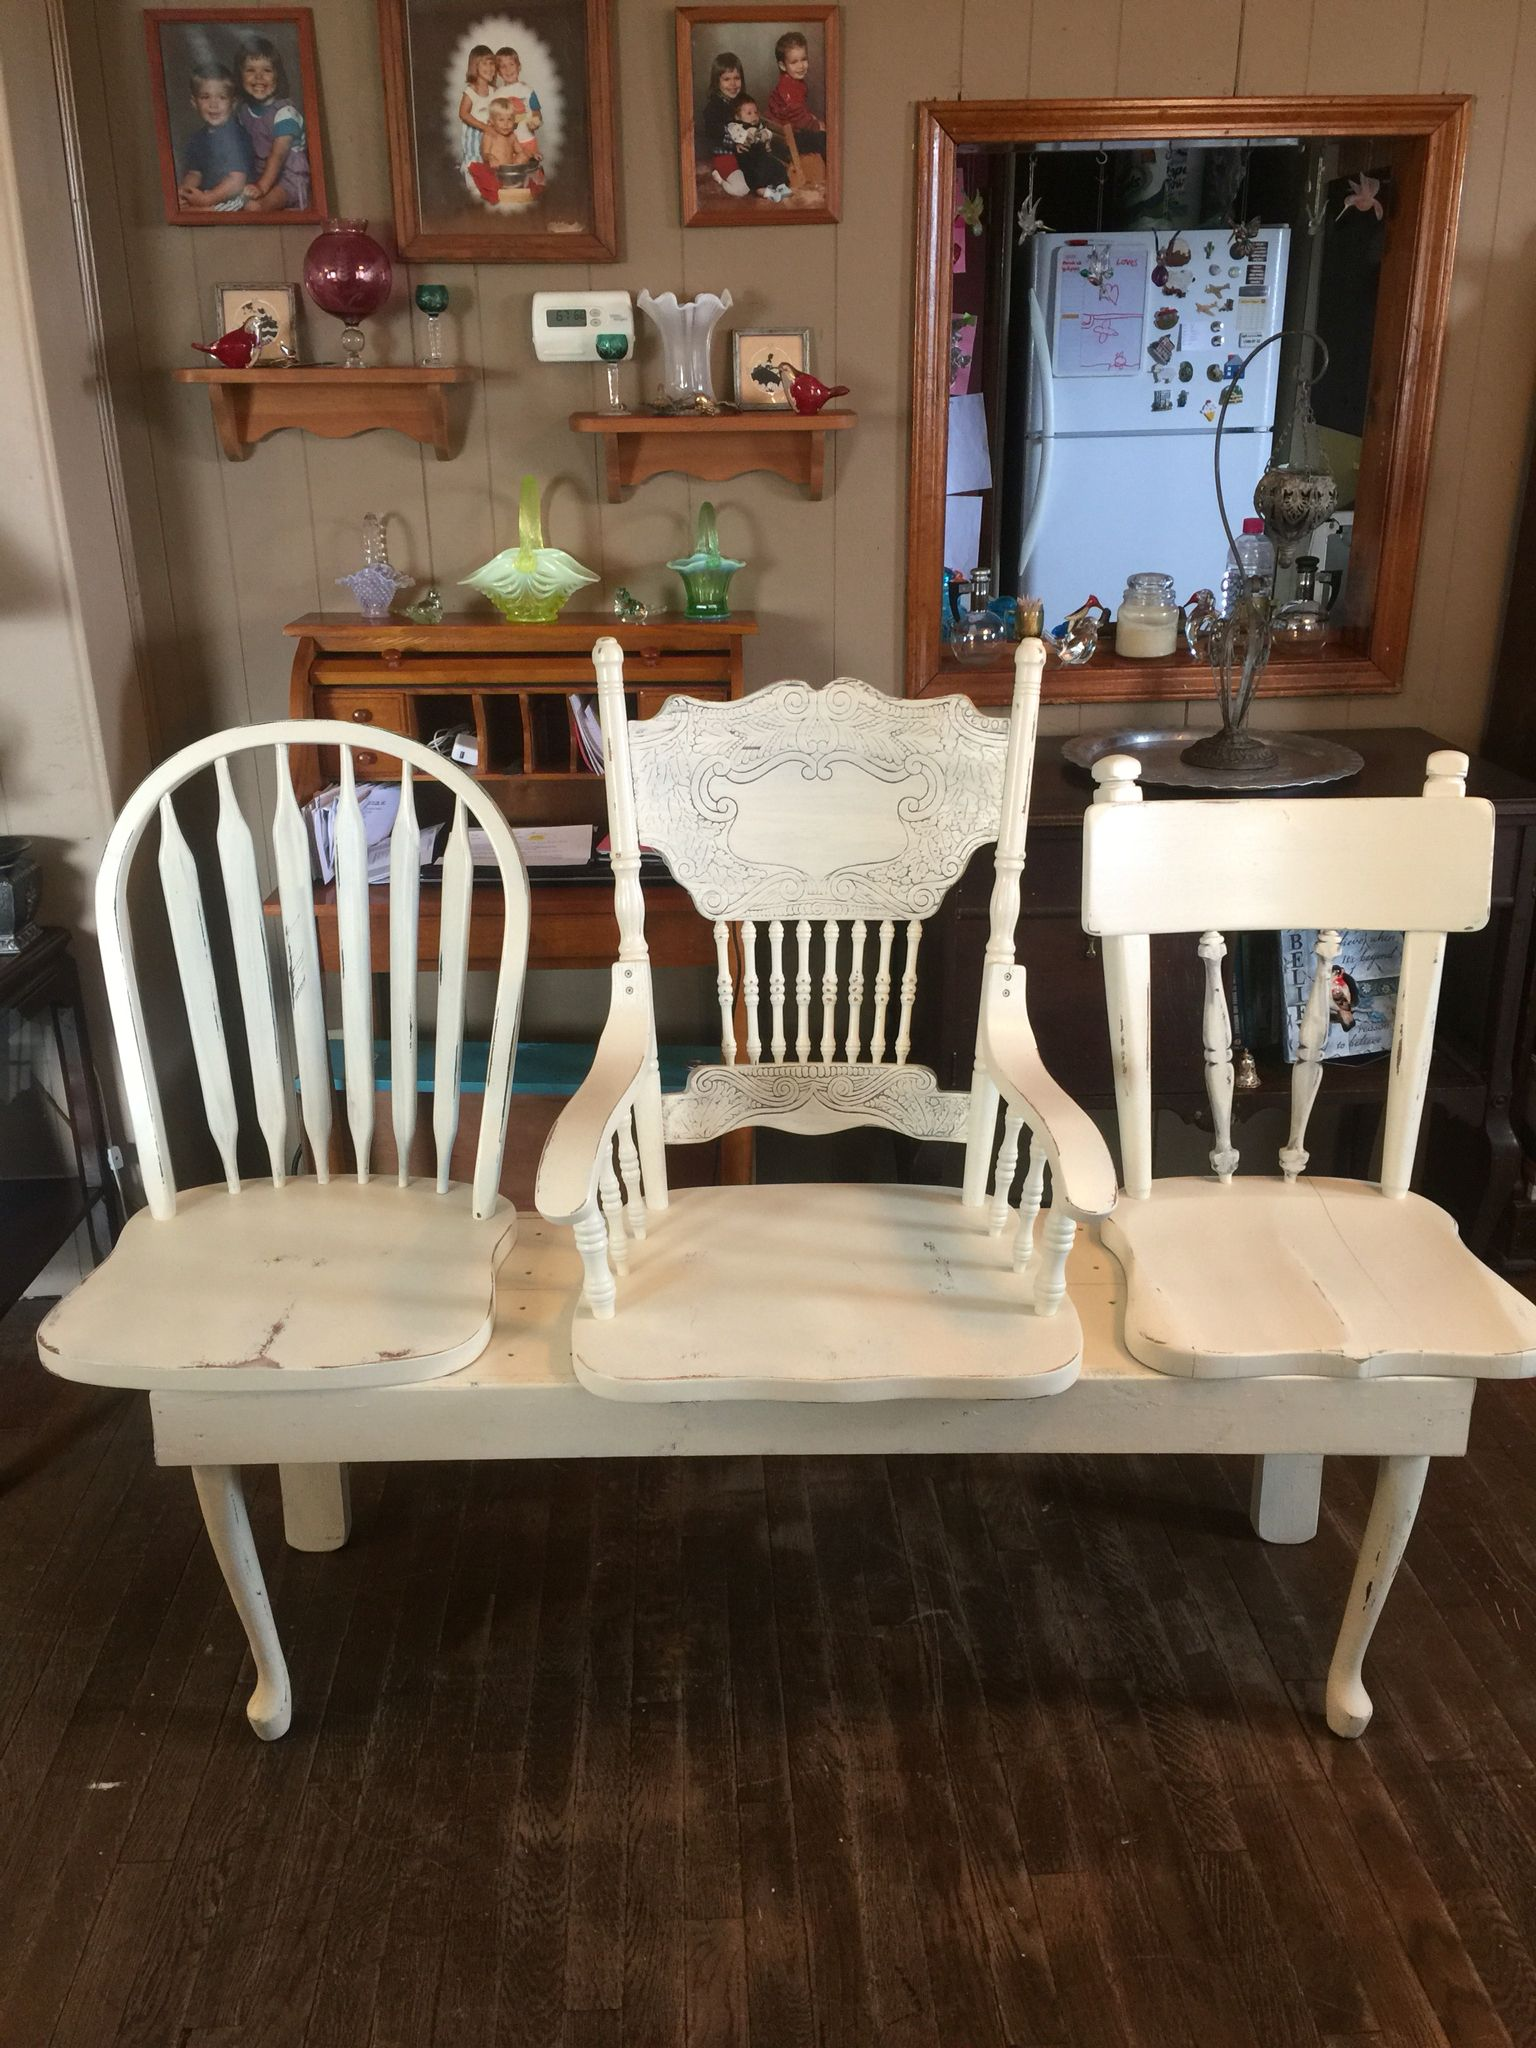 Prime Story Bench Made From 2 Oak Chairs And A Walnut Chair Base Andrewgaddart Wooden Chair Designs For Living Room Andrewgaddartcom